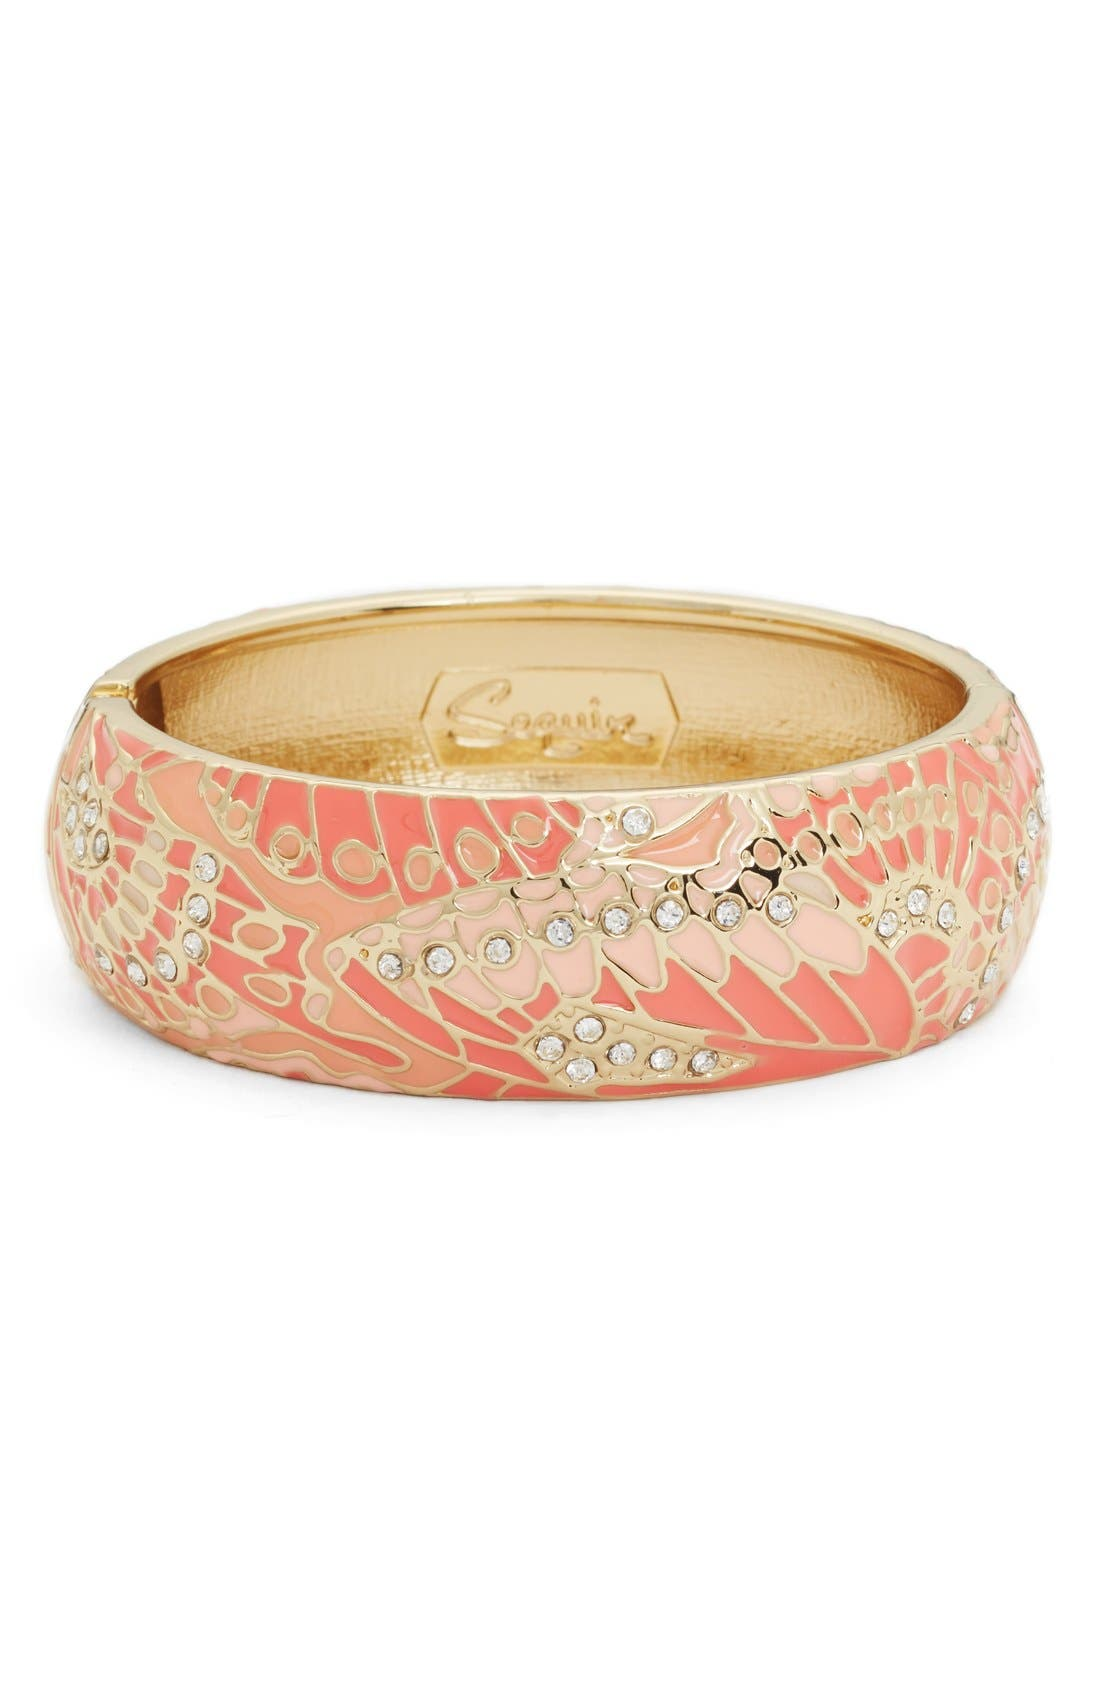 SEQUIN Mariposa Wide Bangle in Coral